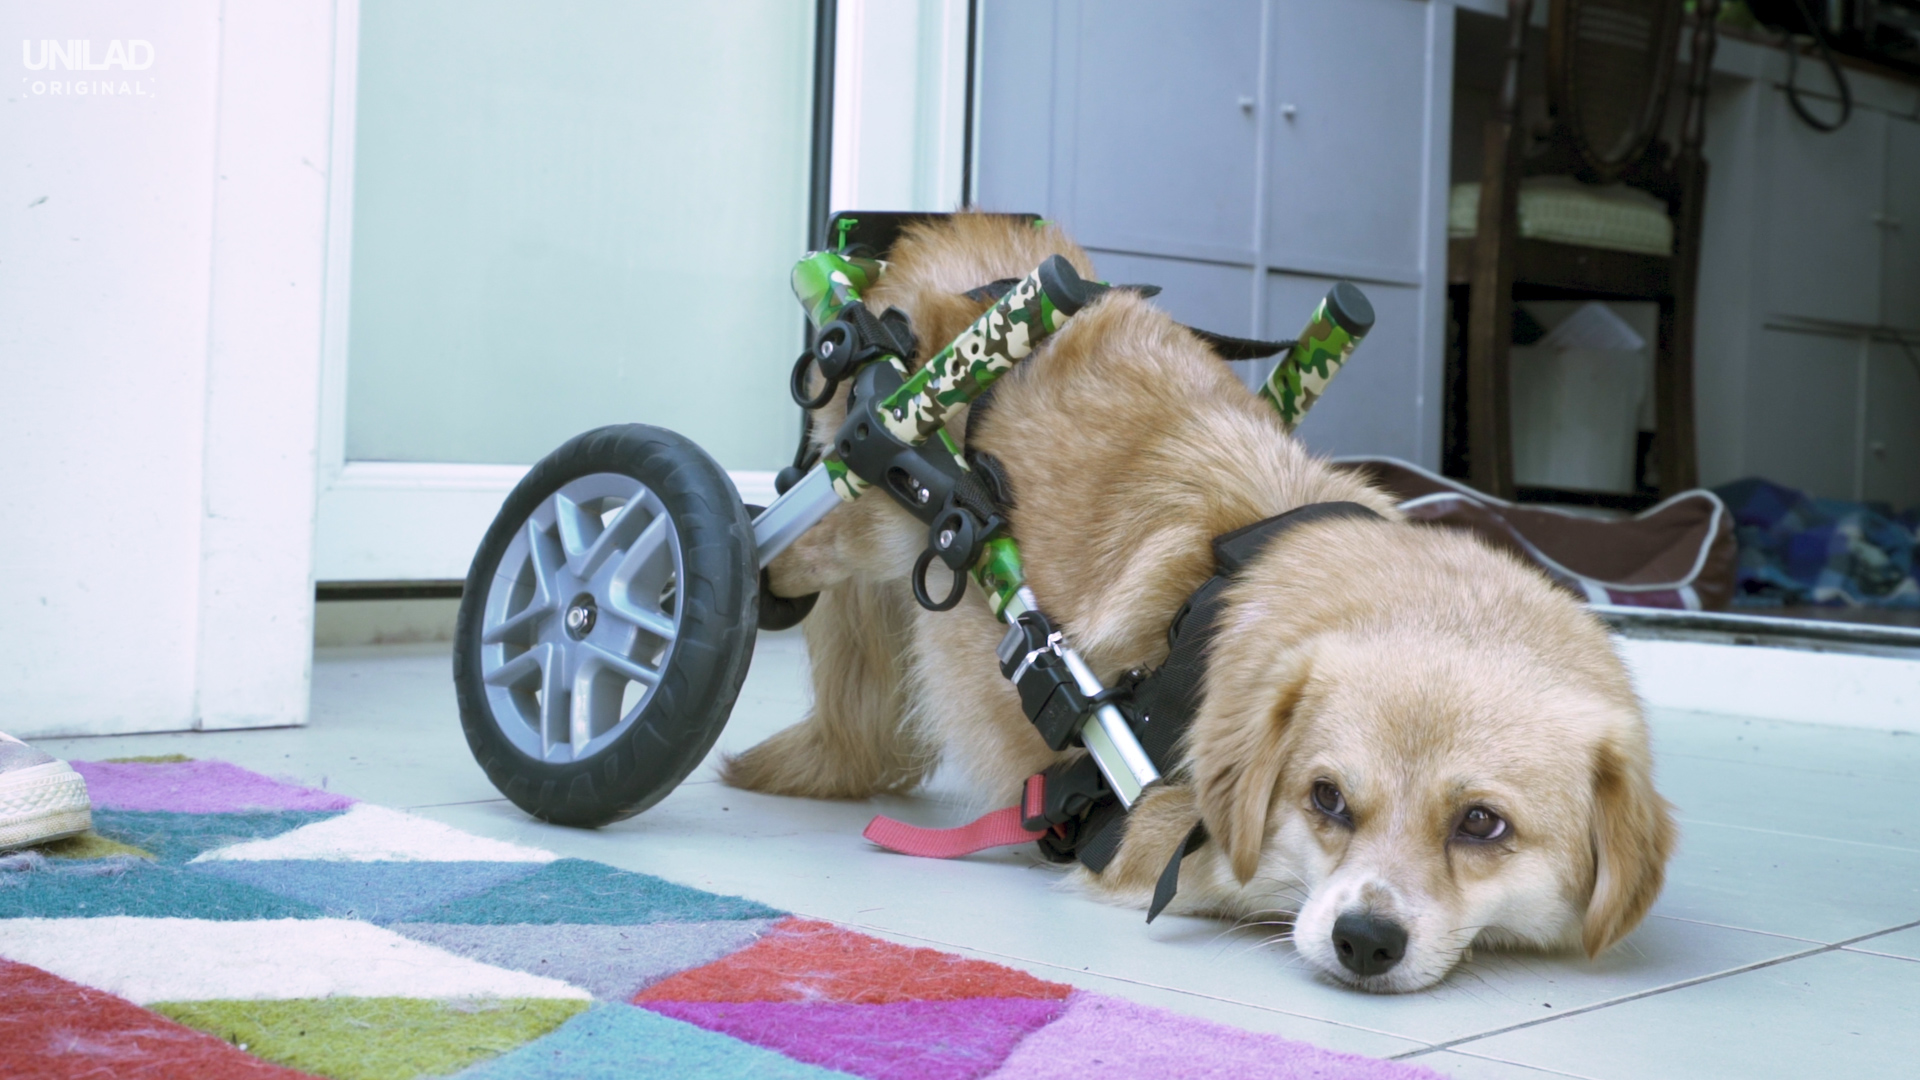 One of Broken Biscuits' disabled dogs